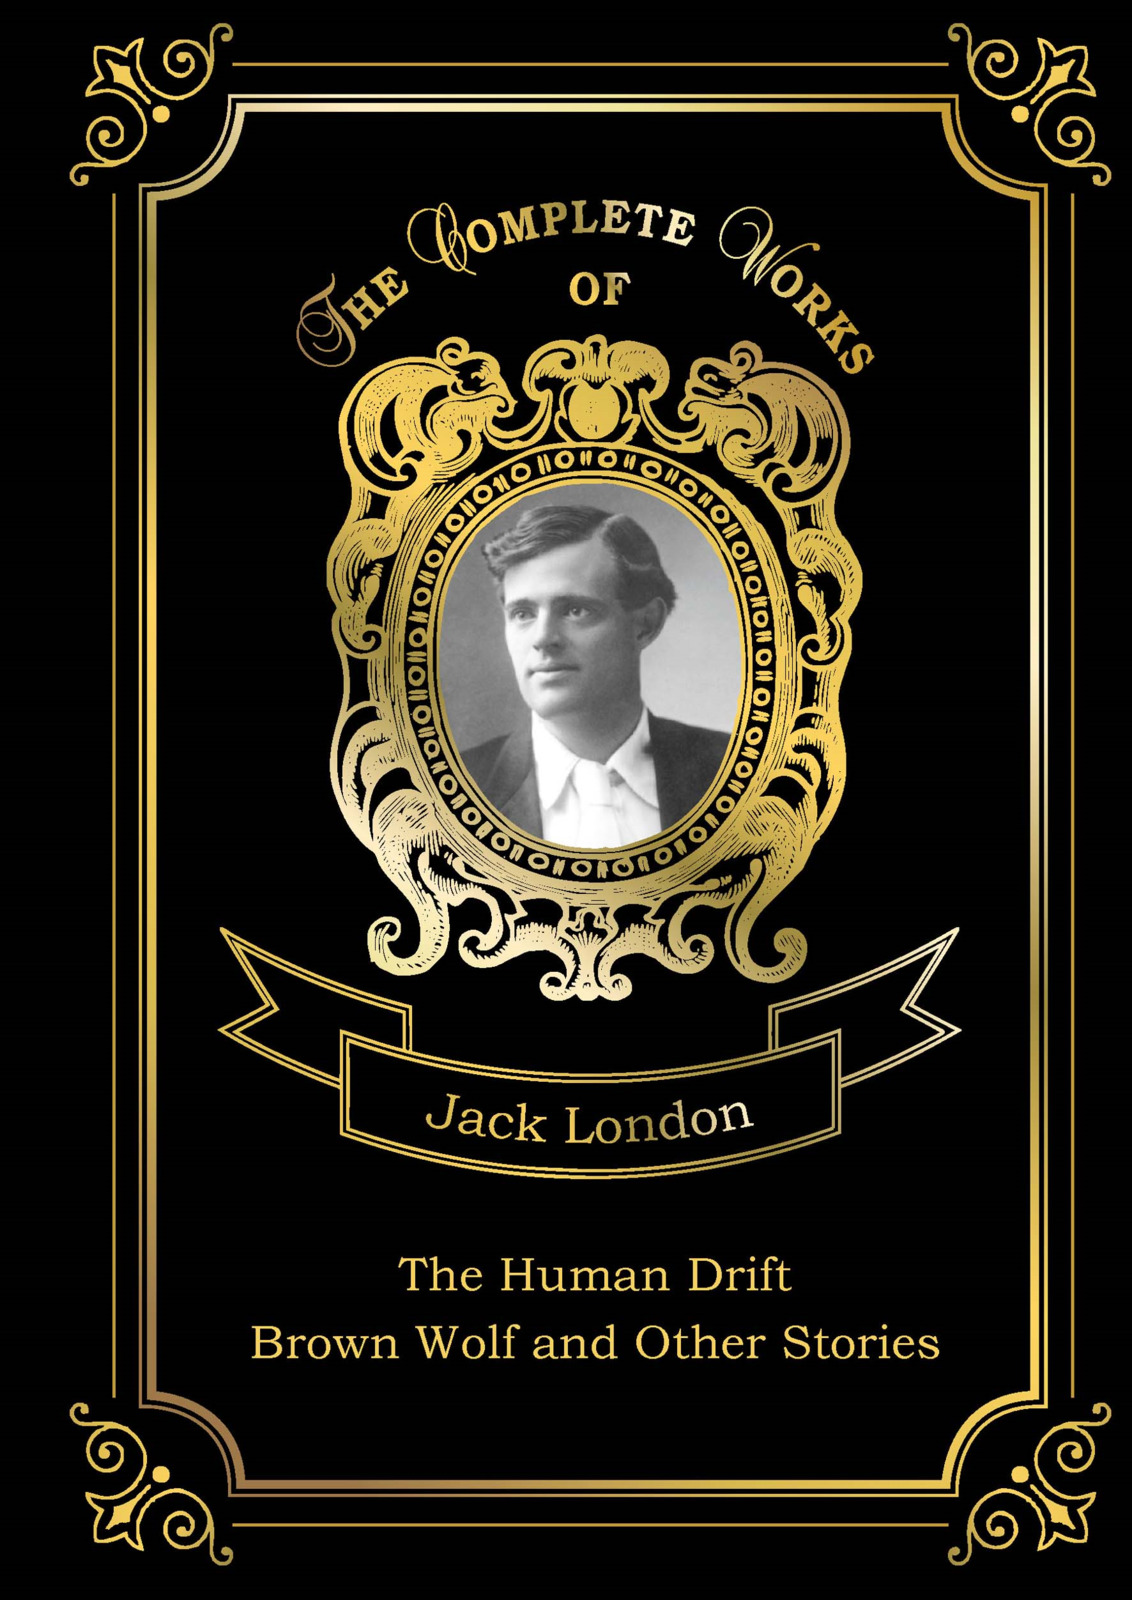 Jack London The Human Drift: Brown Wolf and Other Stories рассказы на английском языке the evil that men do and other short stories плакат